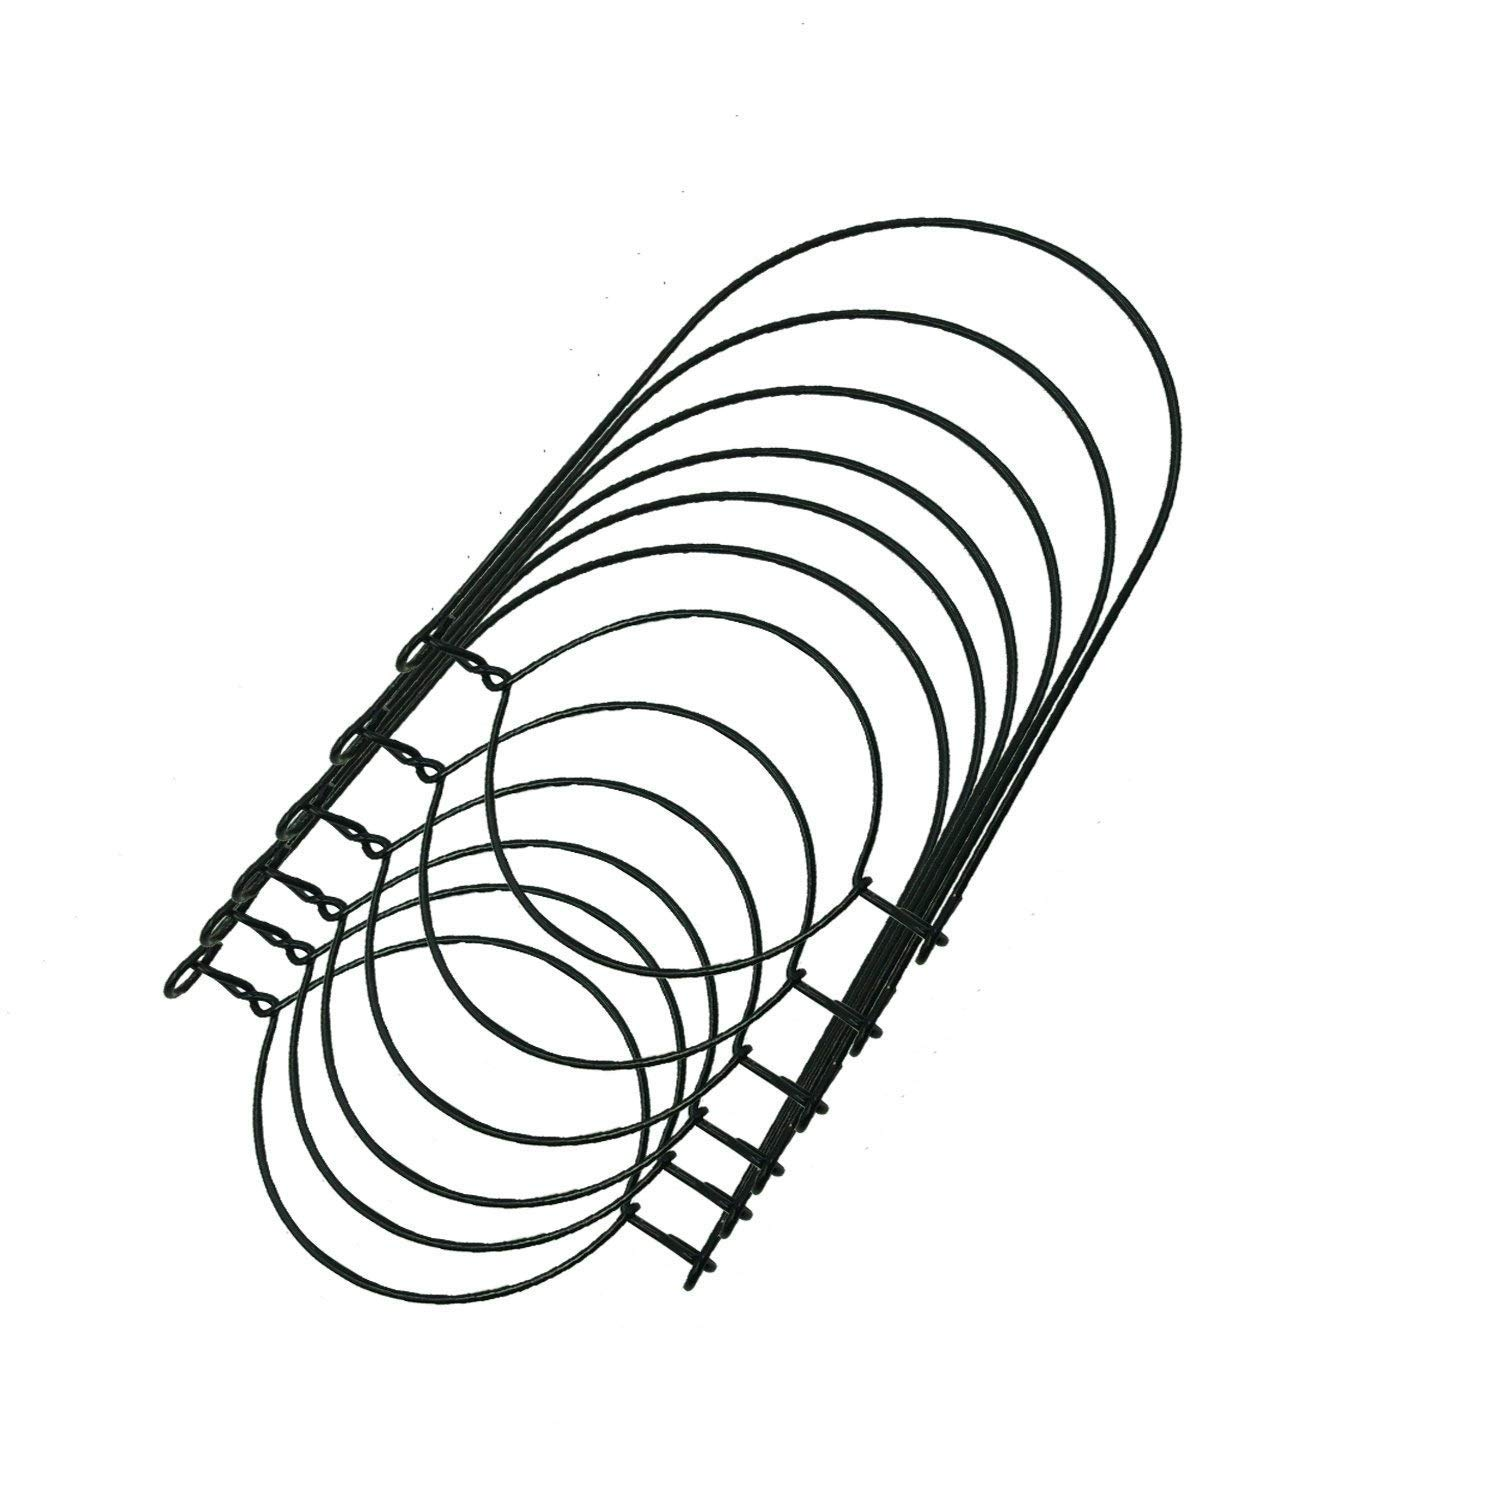 THINKCHANCES Rust Resistant Black Stainless Steel Wire Handles Hangers (Handle-Ease) for Mason, Ball, Canning Jars (6 Pack, Wide mouth)